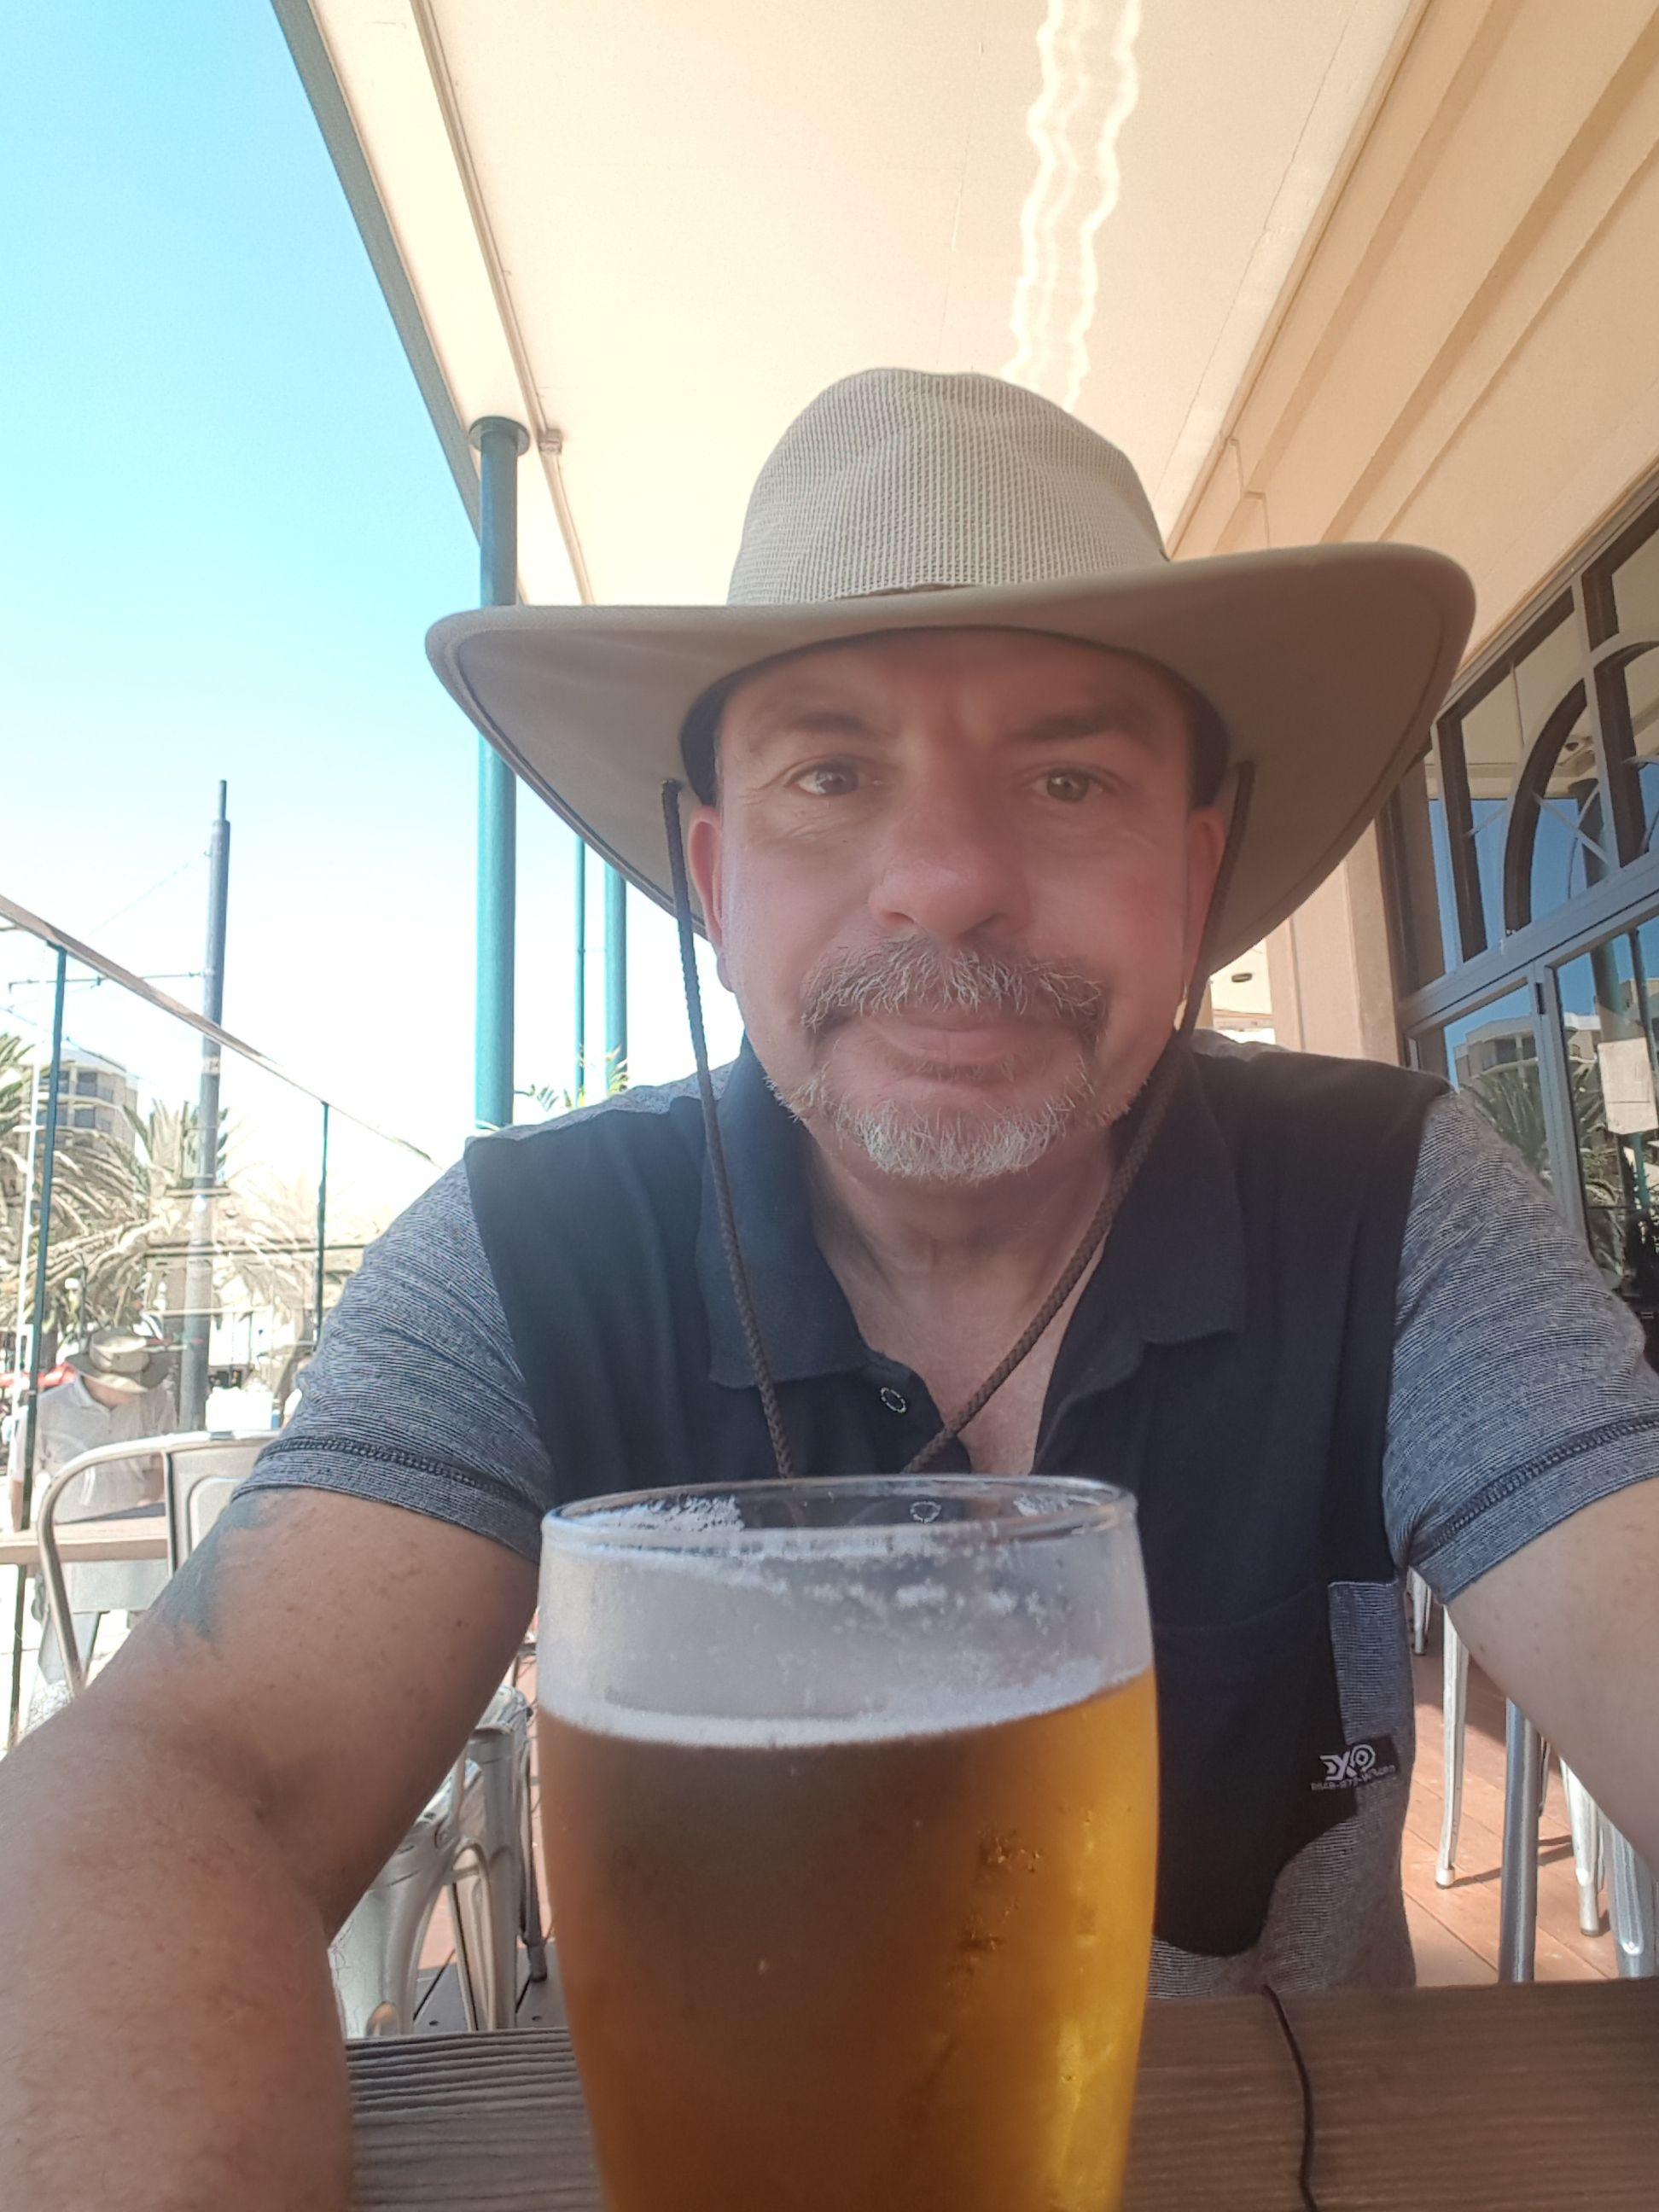 Grouper dating in Perth